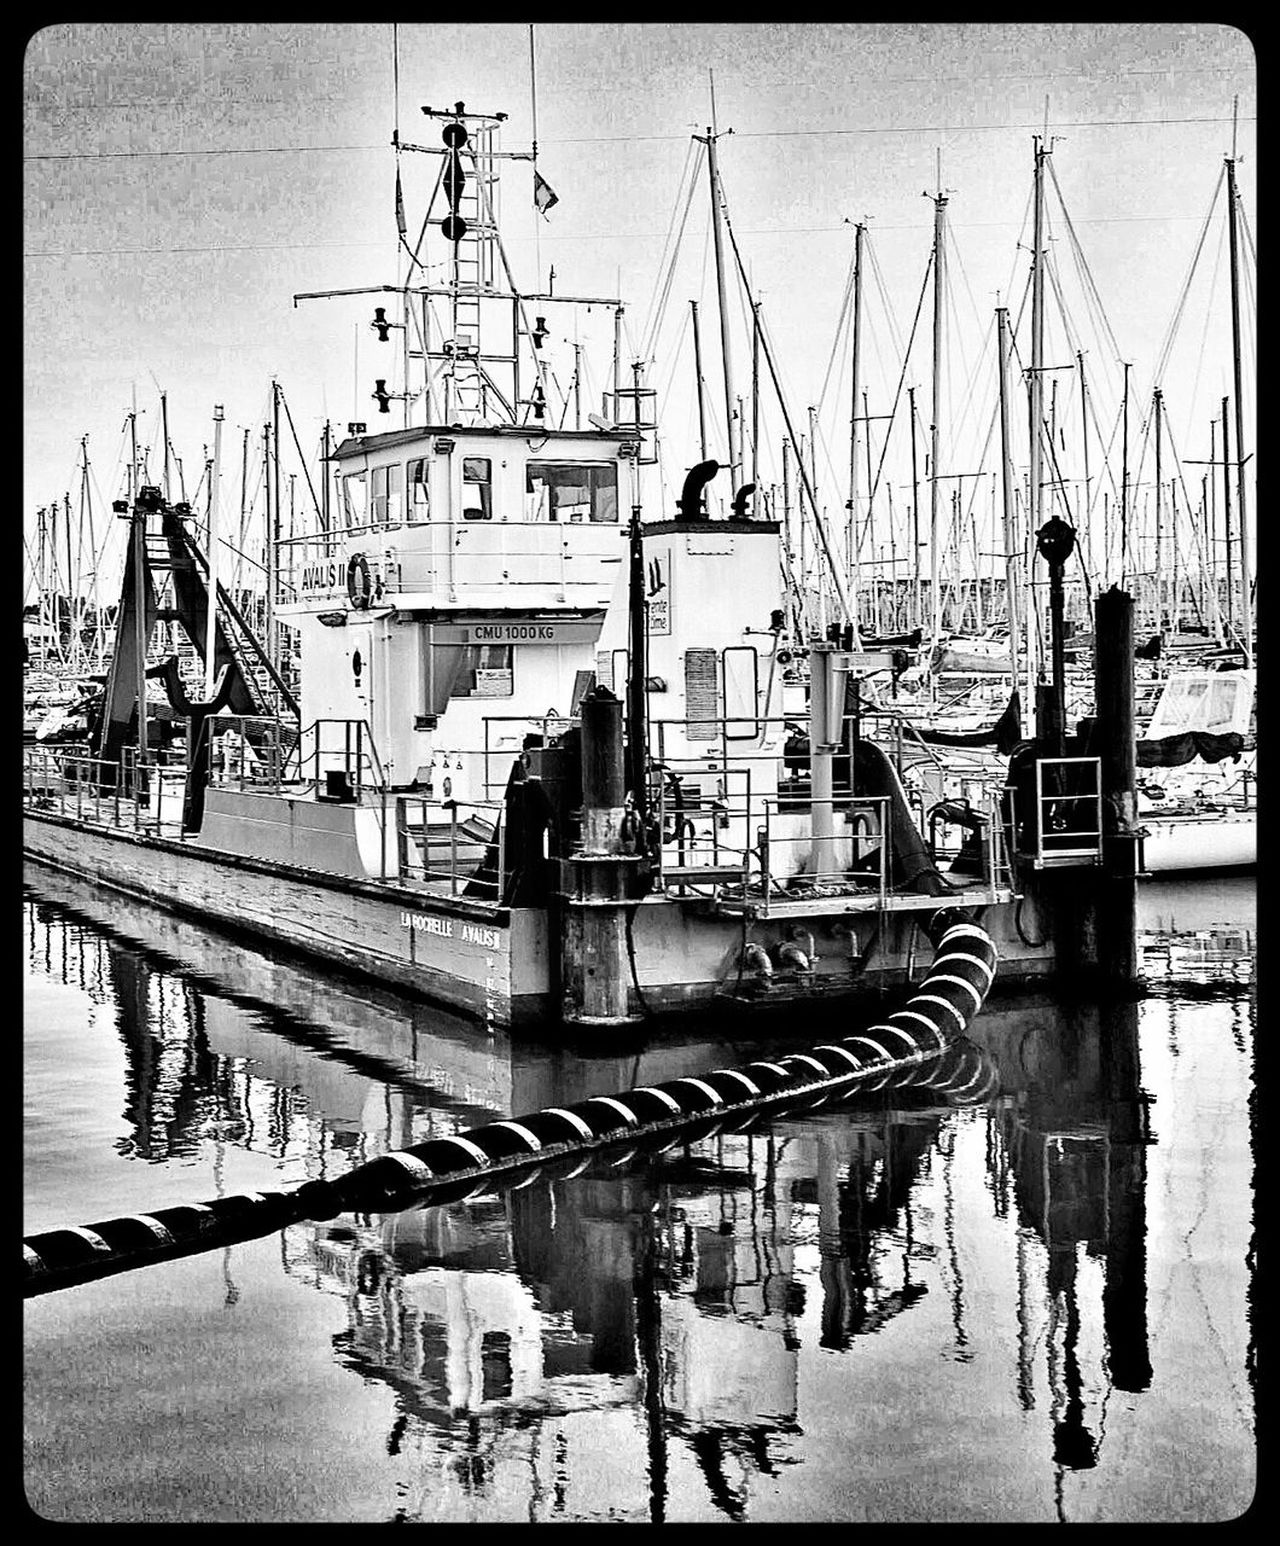 Nautical Vessel Moored Transportation Harbor Reflection Mode Of Transport Mast Water Commercial Dock Pier Sky No People Tall Ship Outdoors Trawler Day Industry Dock Port Yacht Blackandwhite Reflections